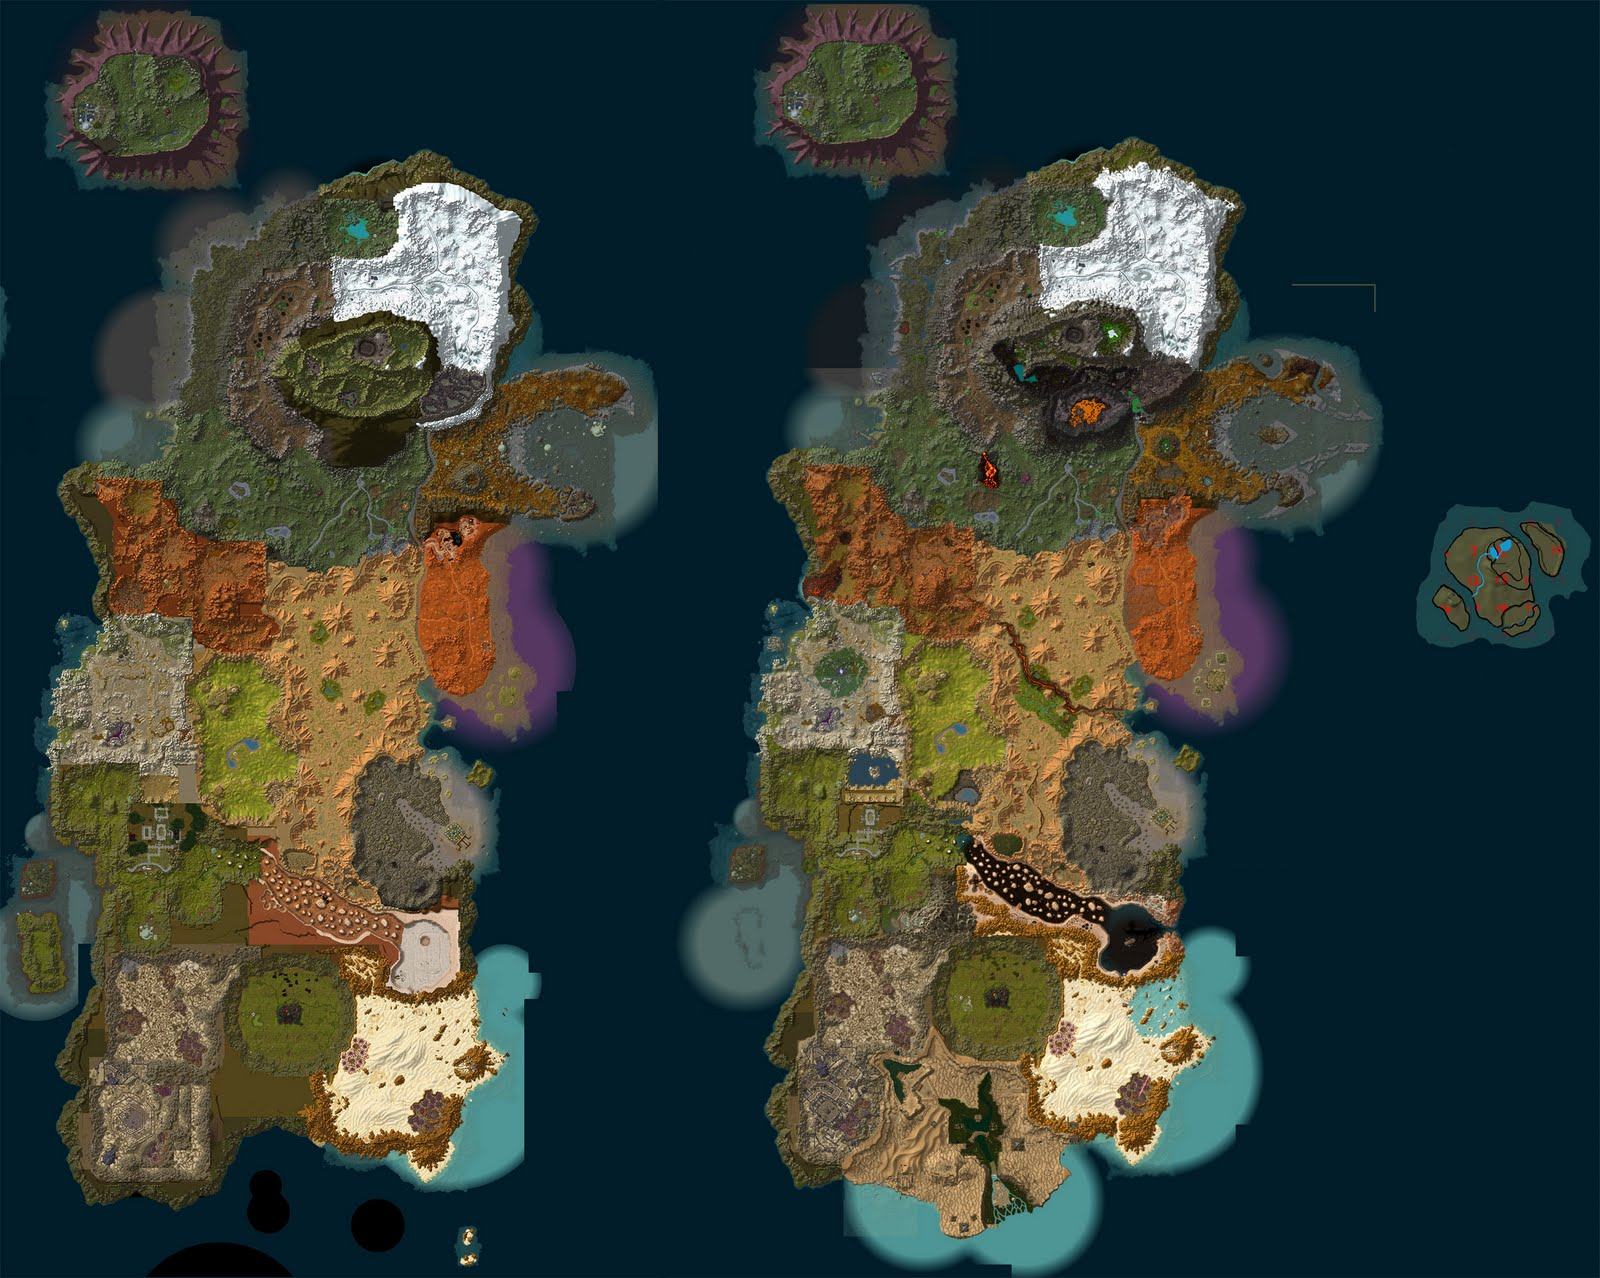 Cataclysm maps kalimdor old and new comparison kalimdor old and new comparison gumiabroncs Images